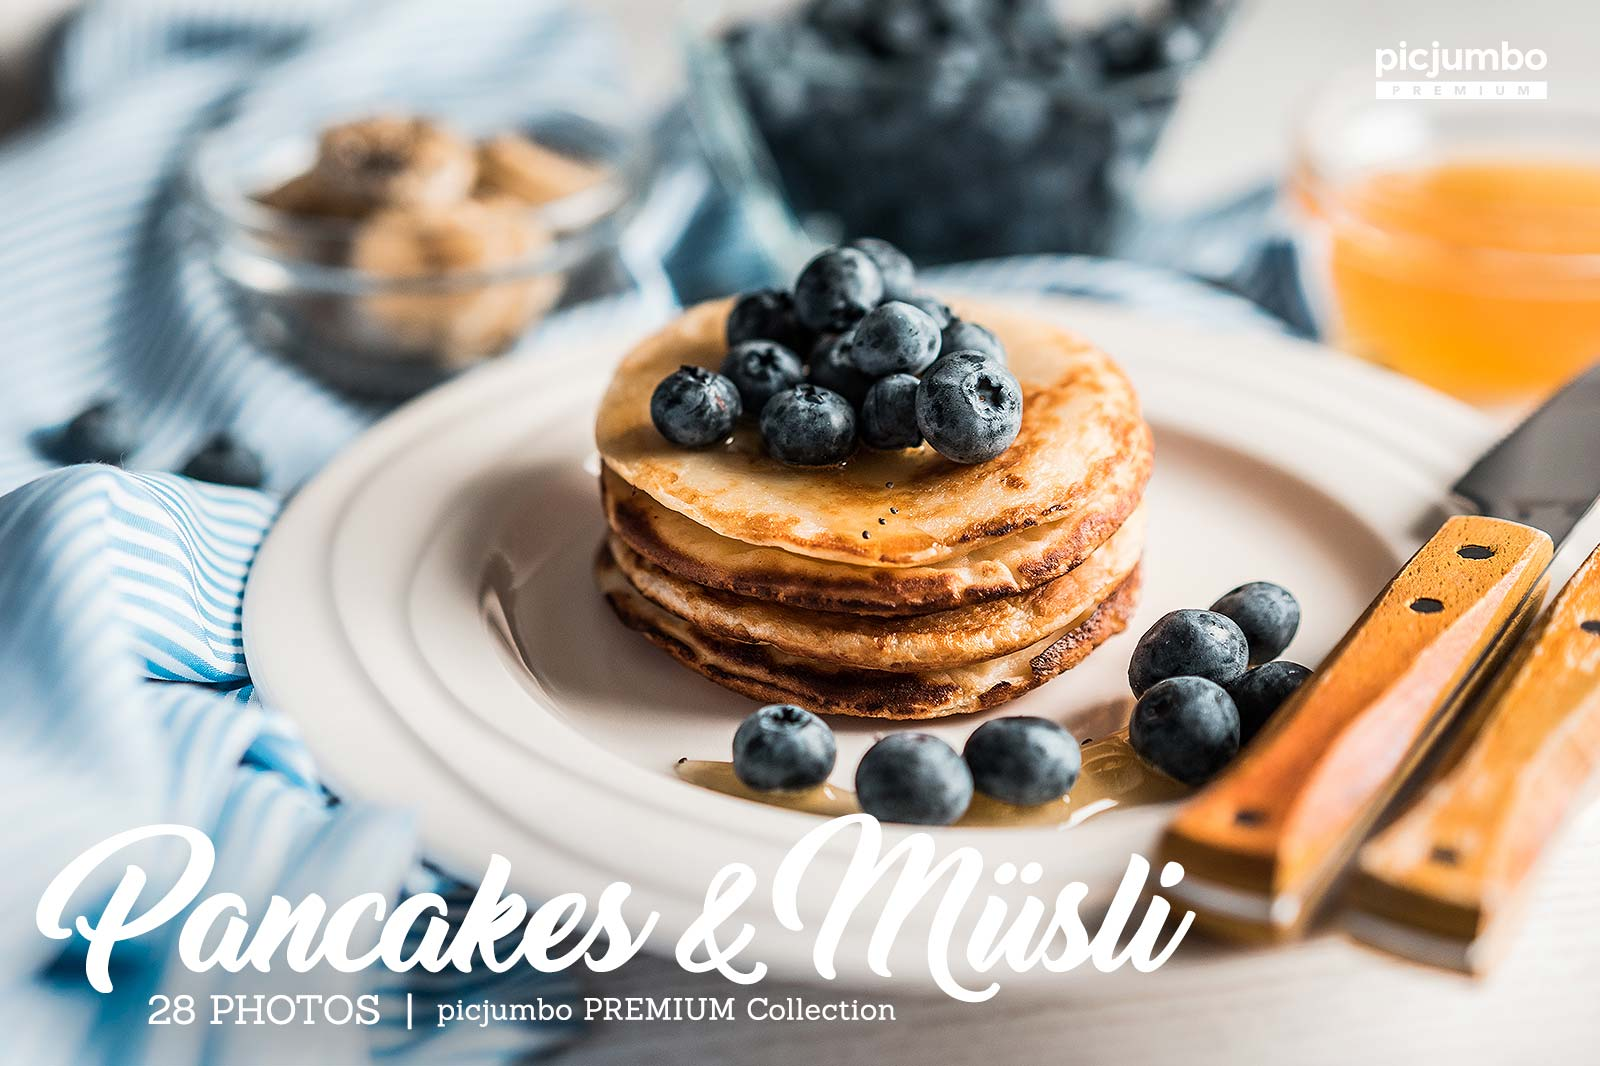 Pancakes & Müsli — get it now in picjumbo PREMIUM!